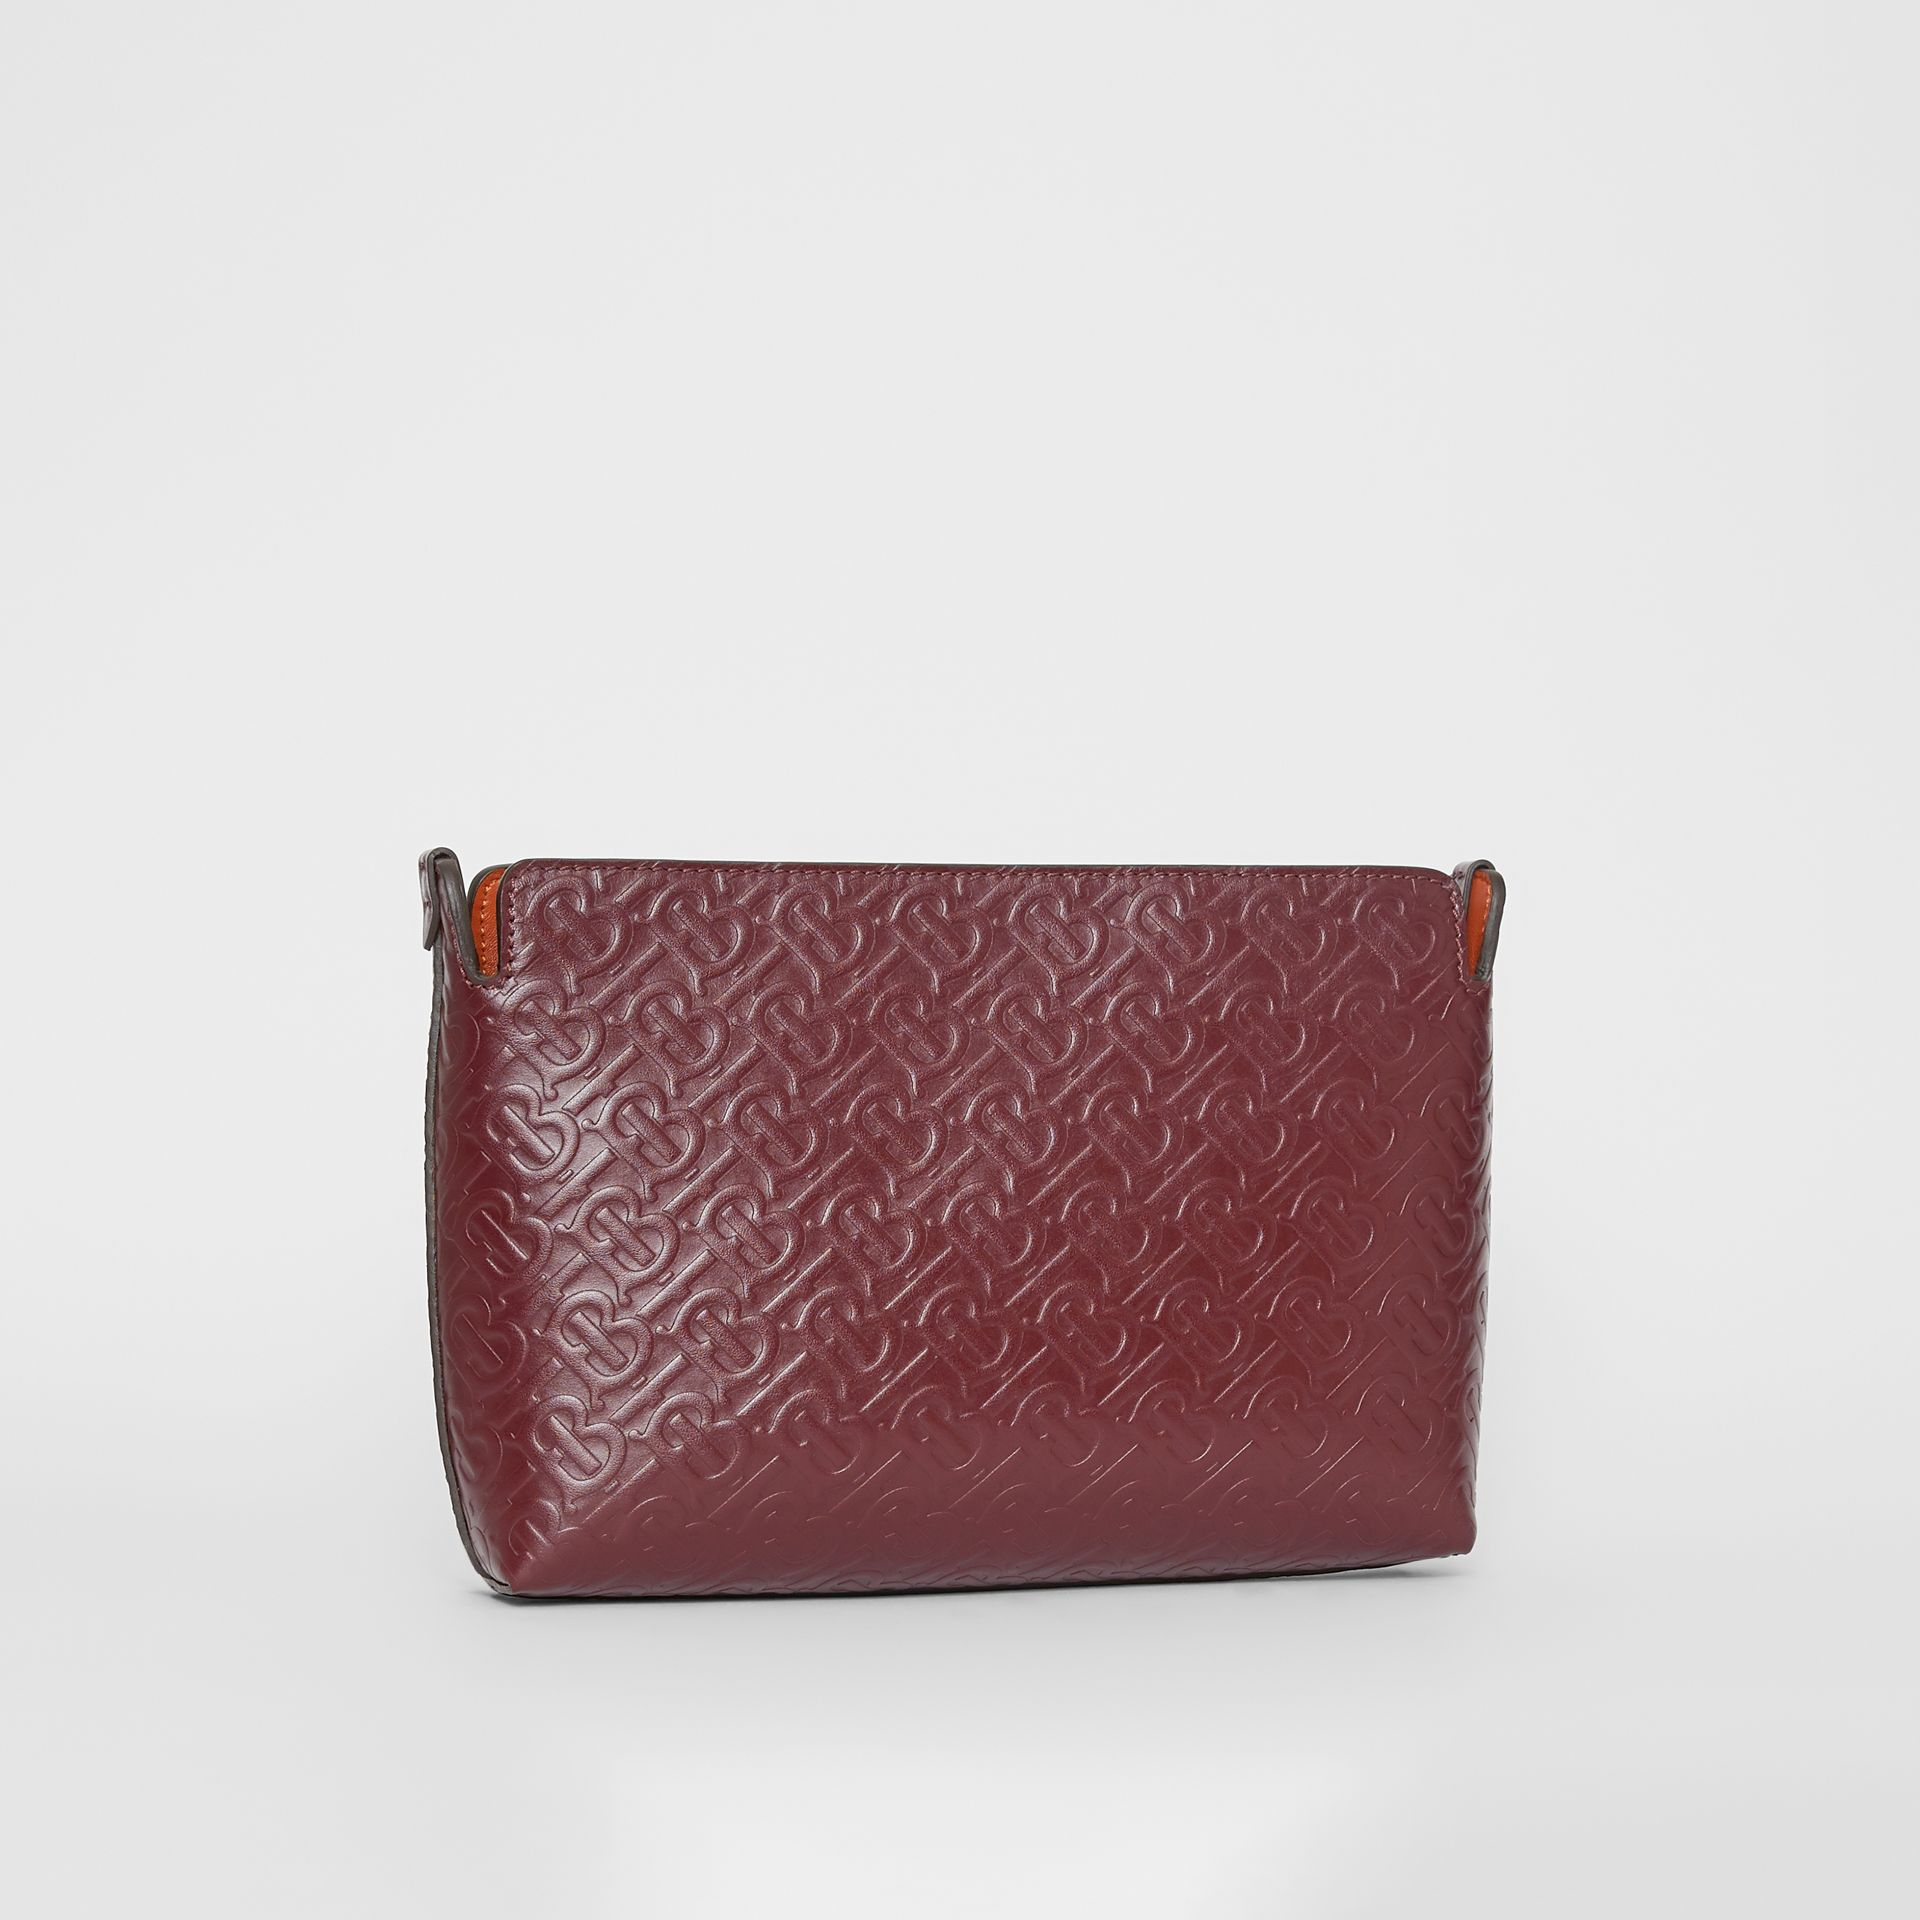 Medium Monogram Leather Clutch in Oxblood - Women | Burberry - gallery image 3